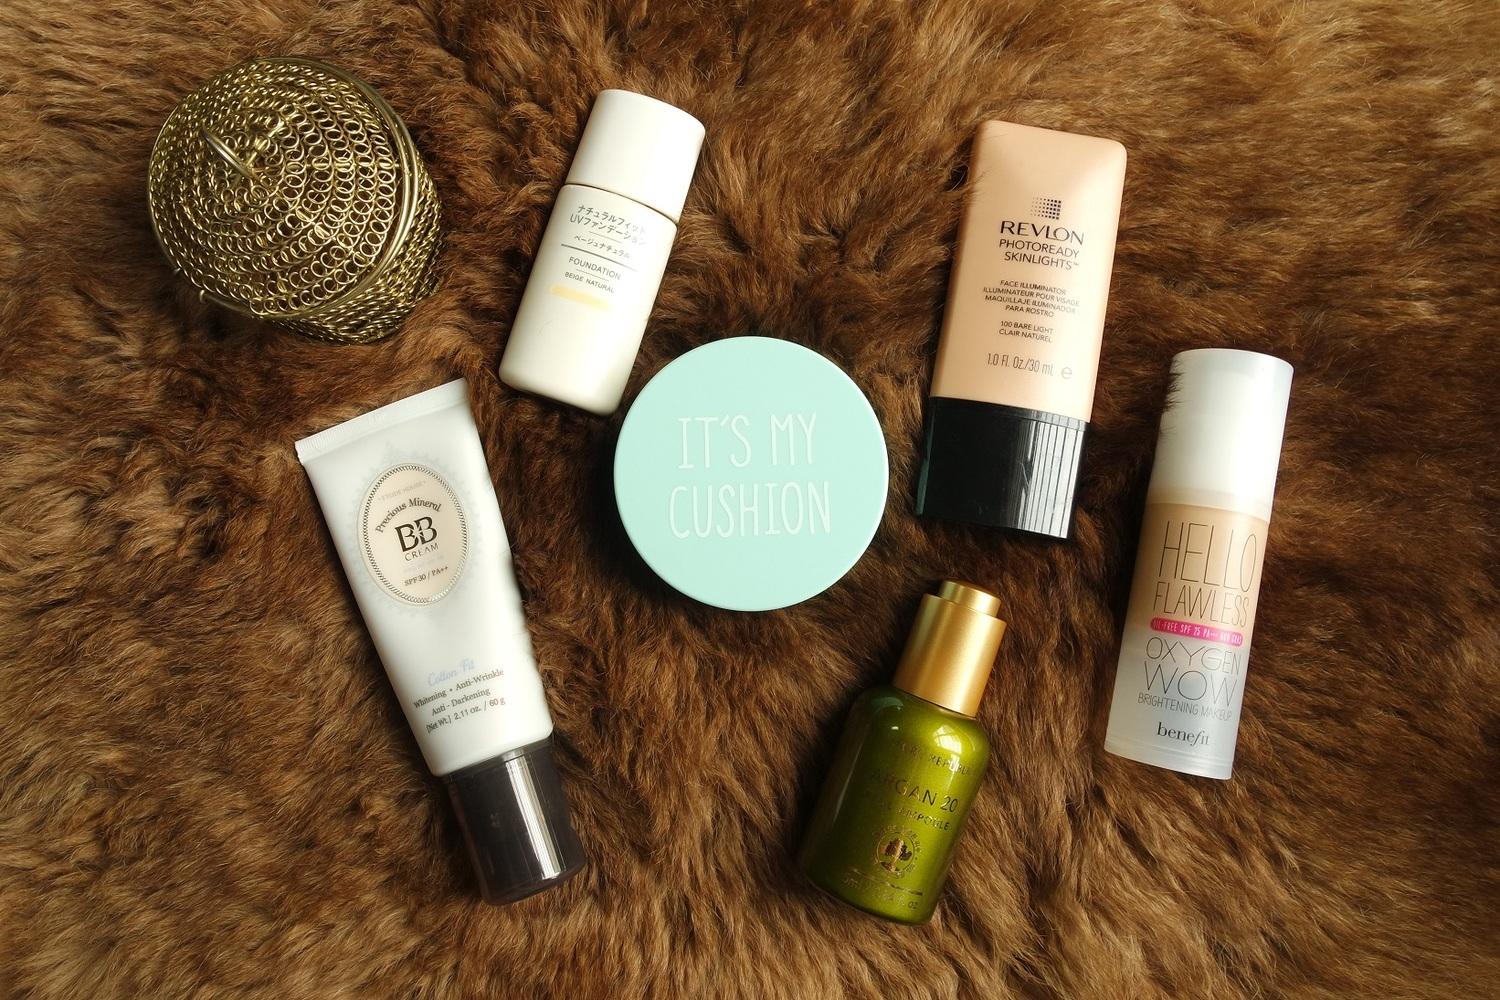 How To Diy Your Own Cushion Compact Using Products You Already Have